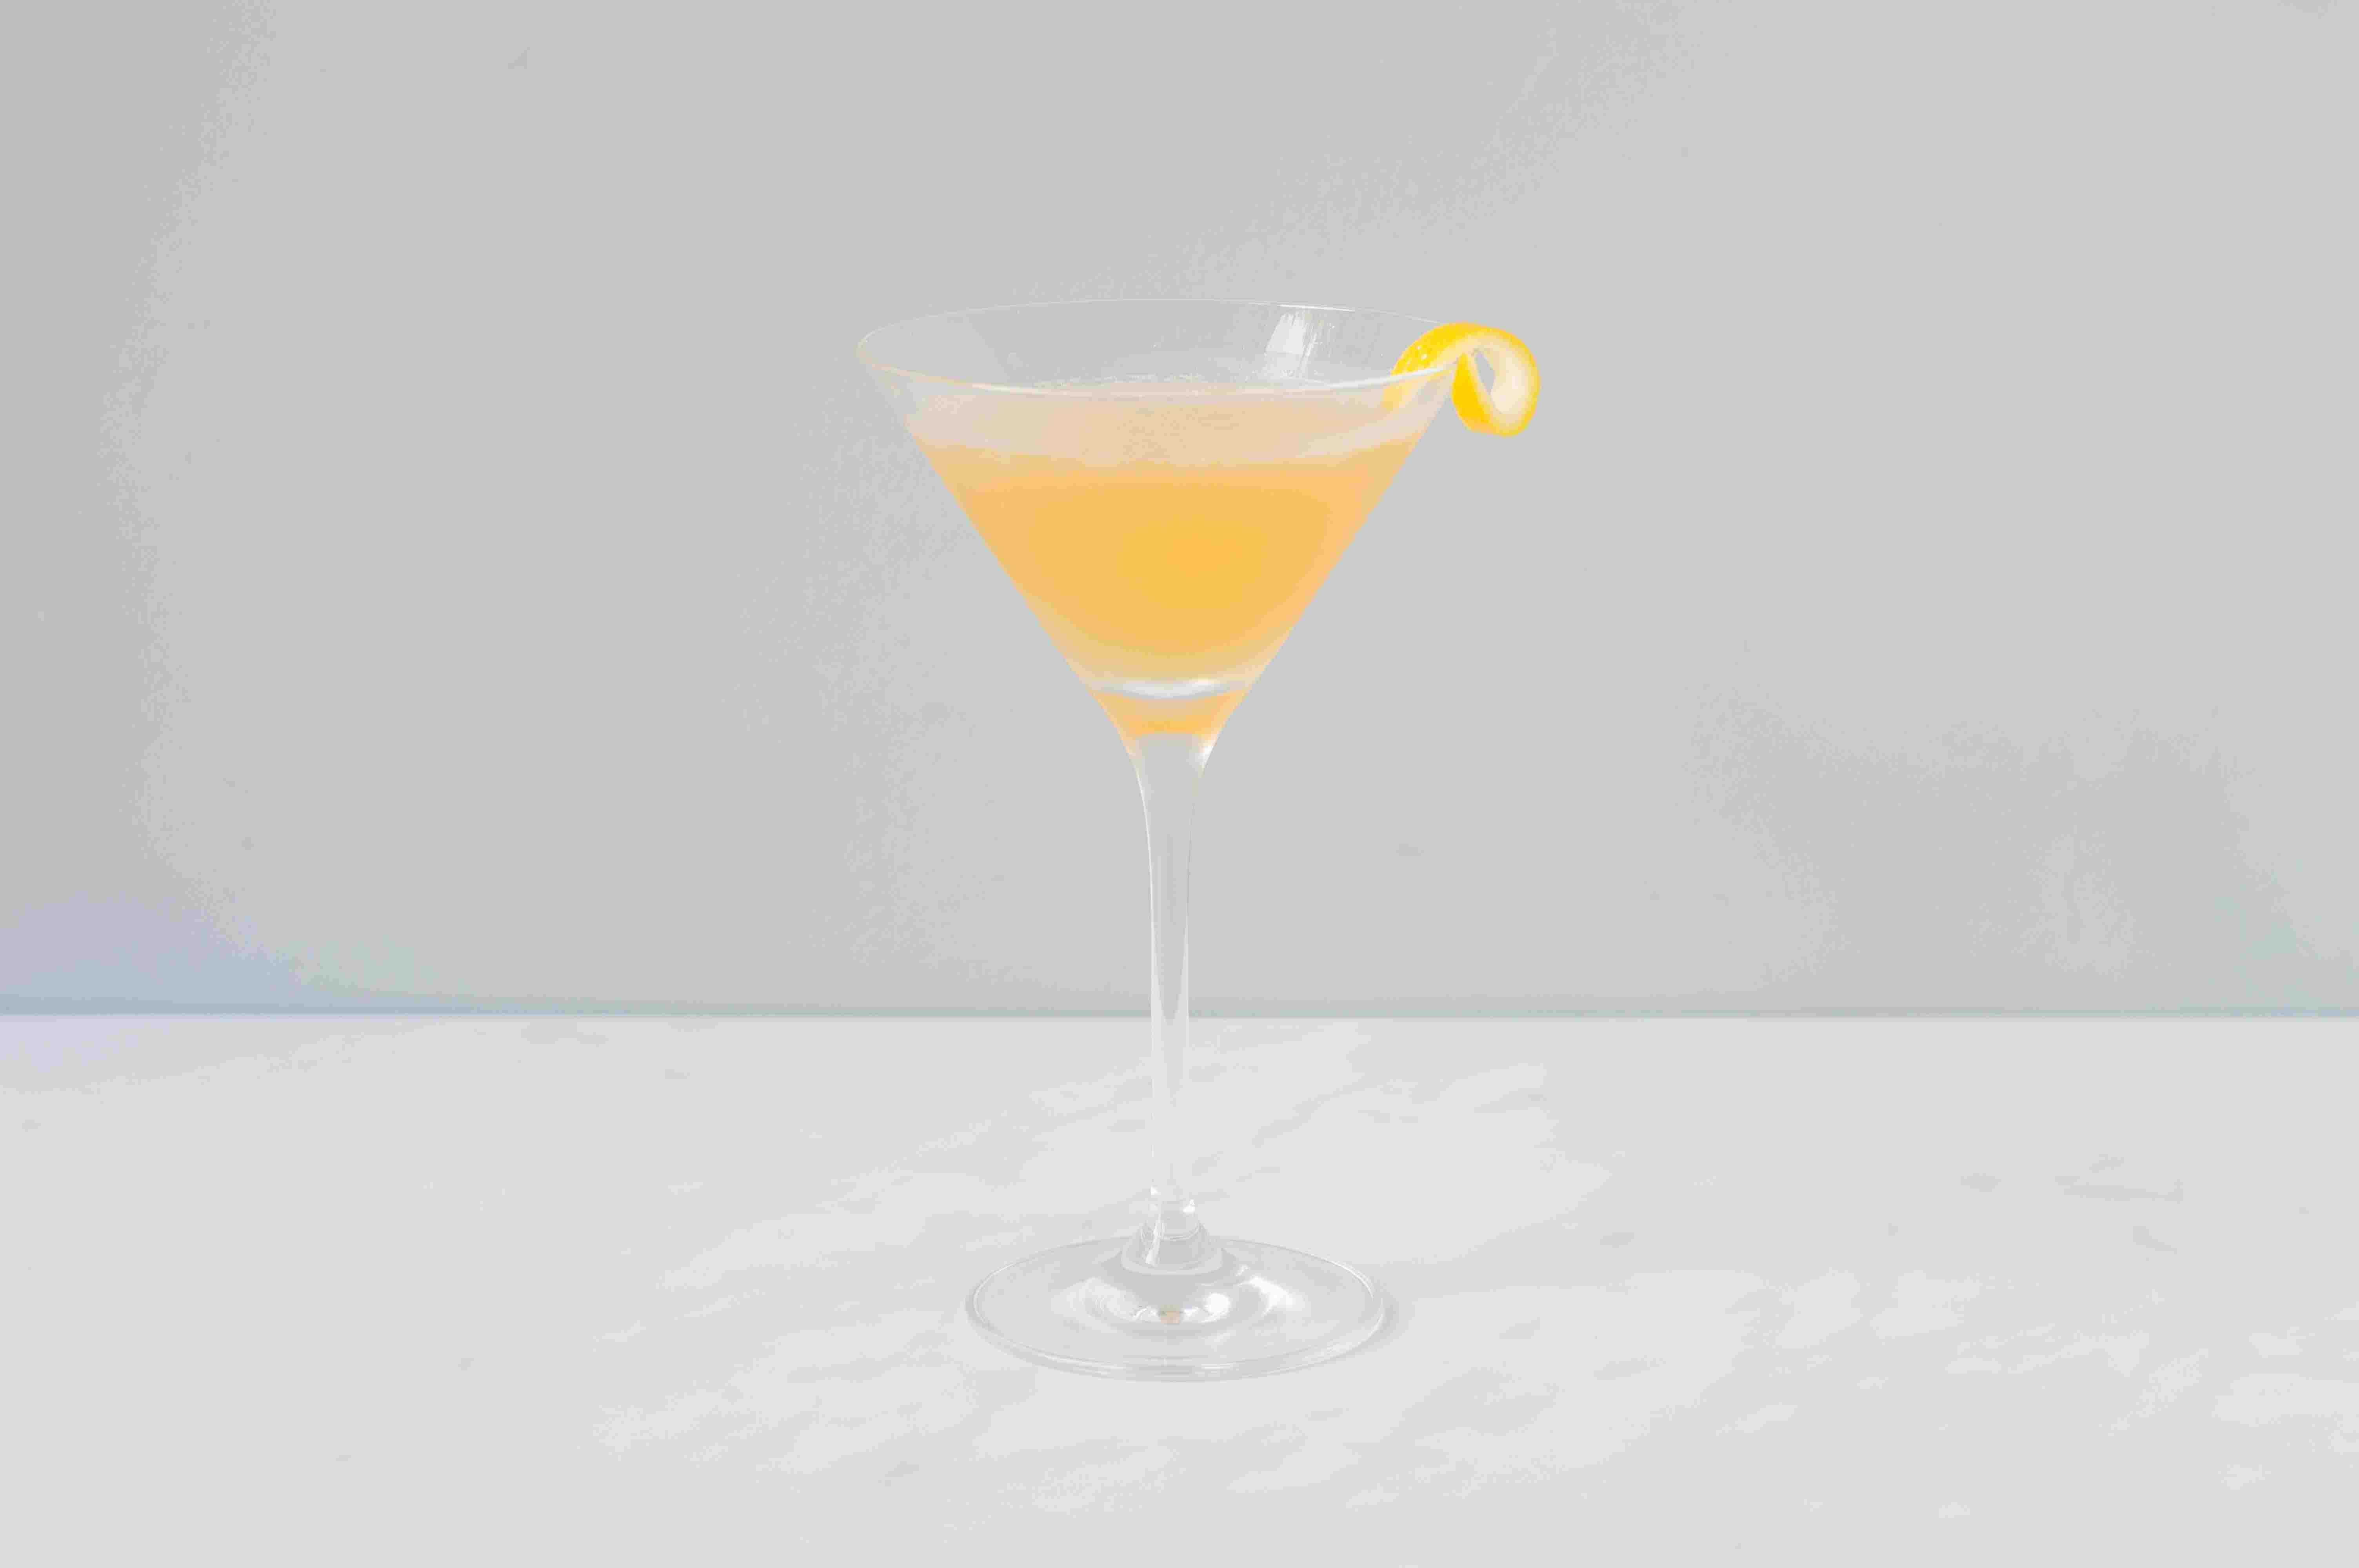 Classic sidecar cocktail with a lemon twist